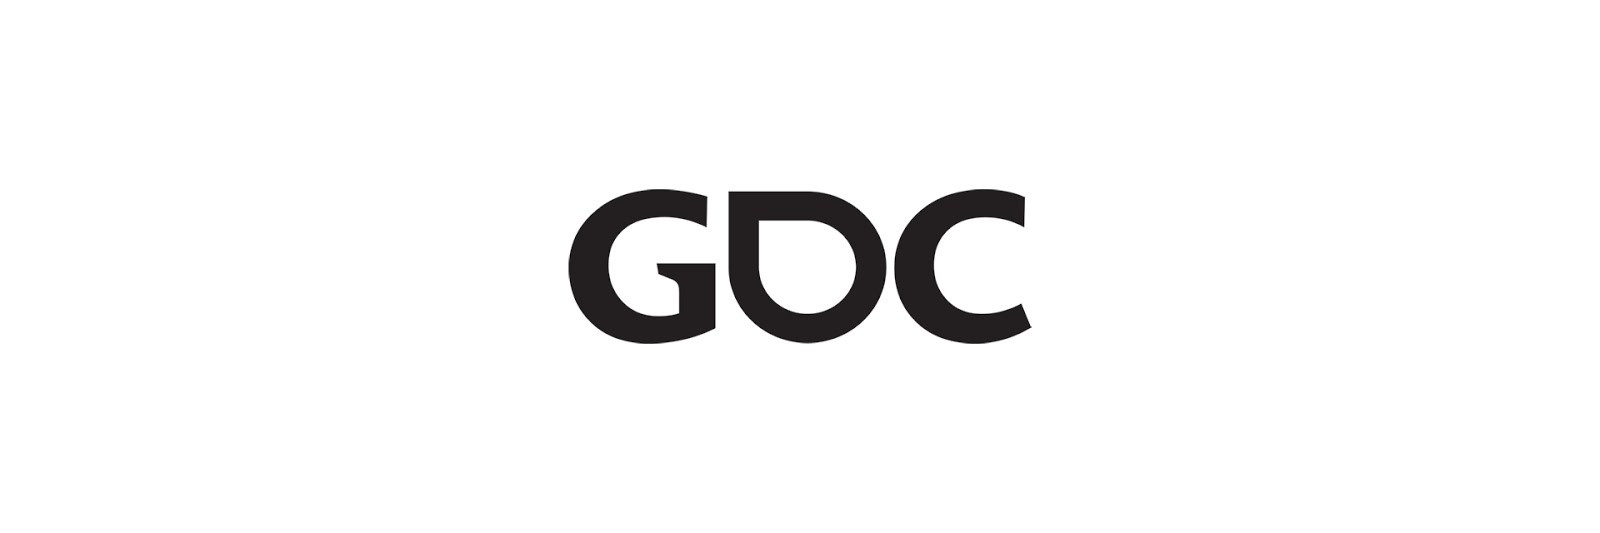 GDC 2019 Stadia Keynote Video Image